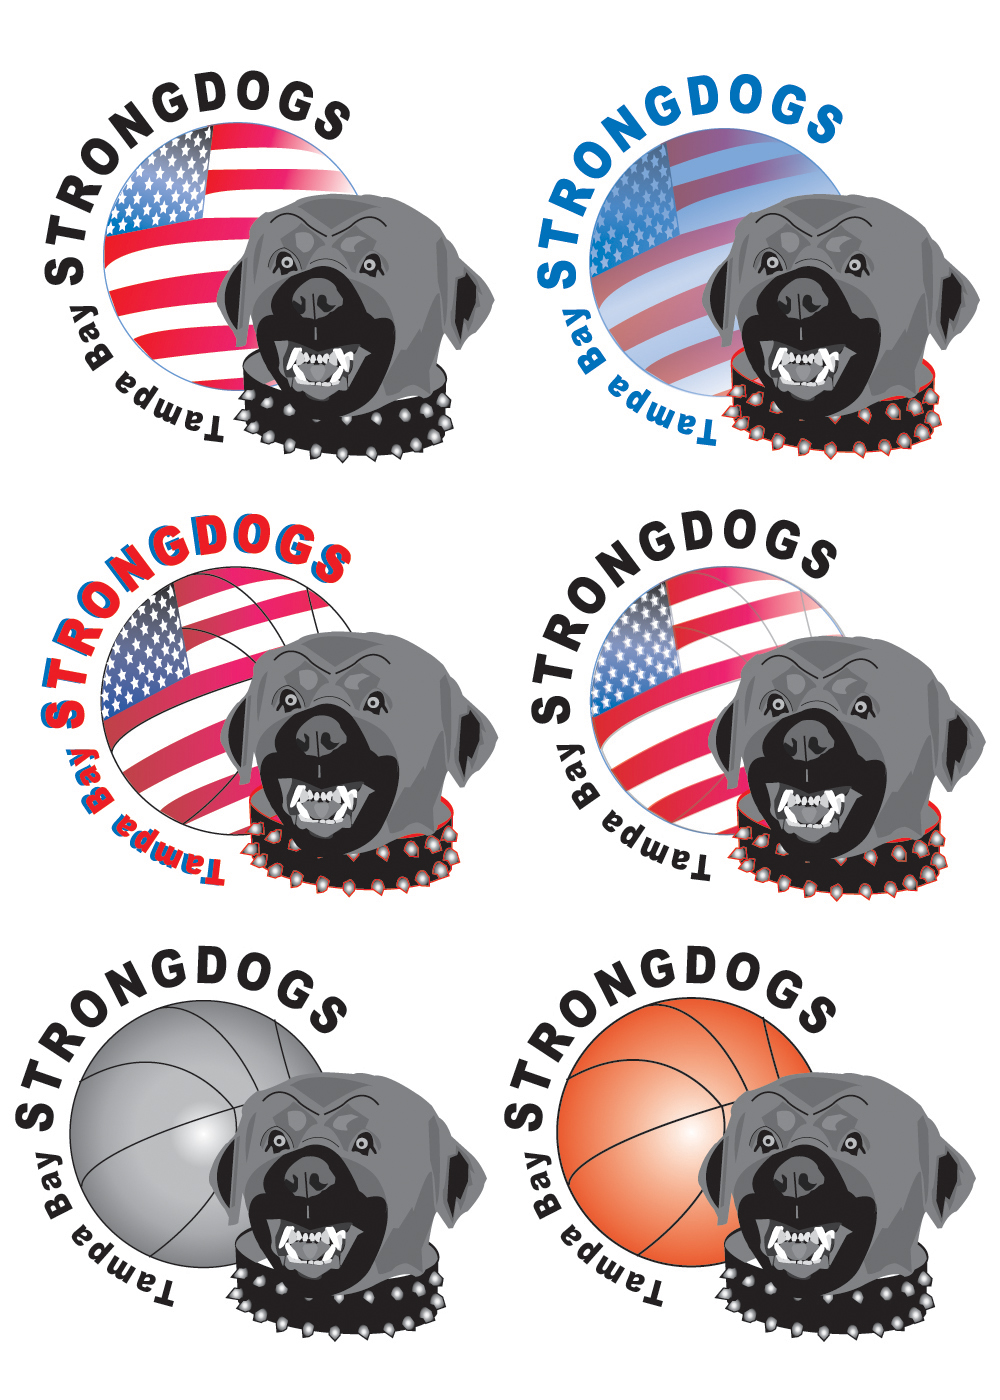 Tampa Bay Strongdogs Logos